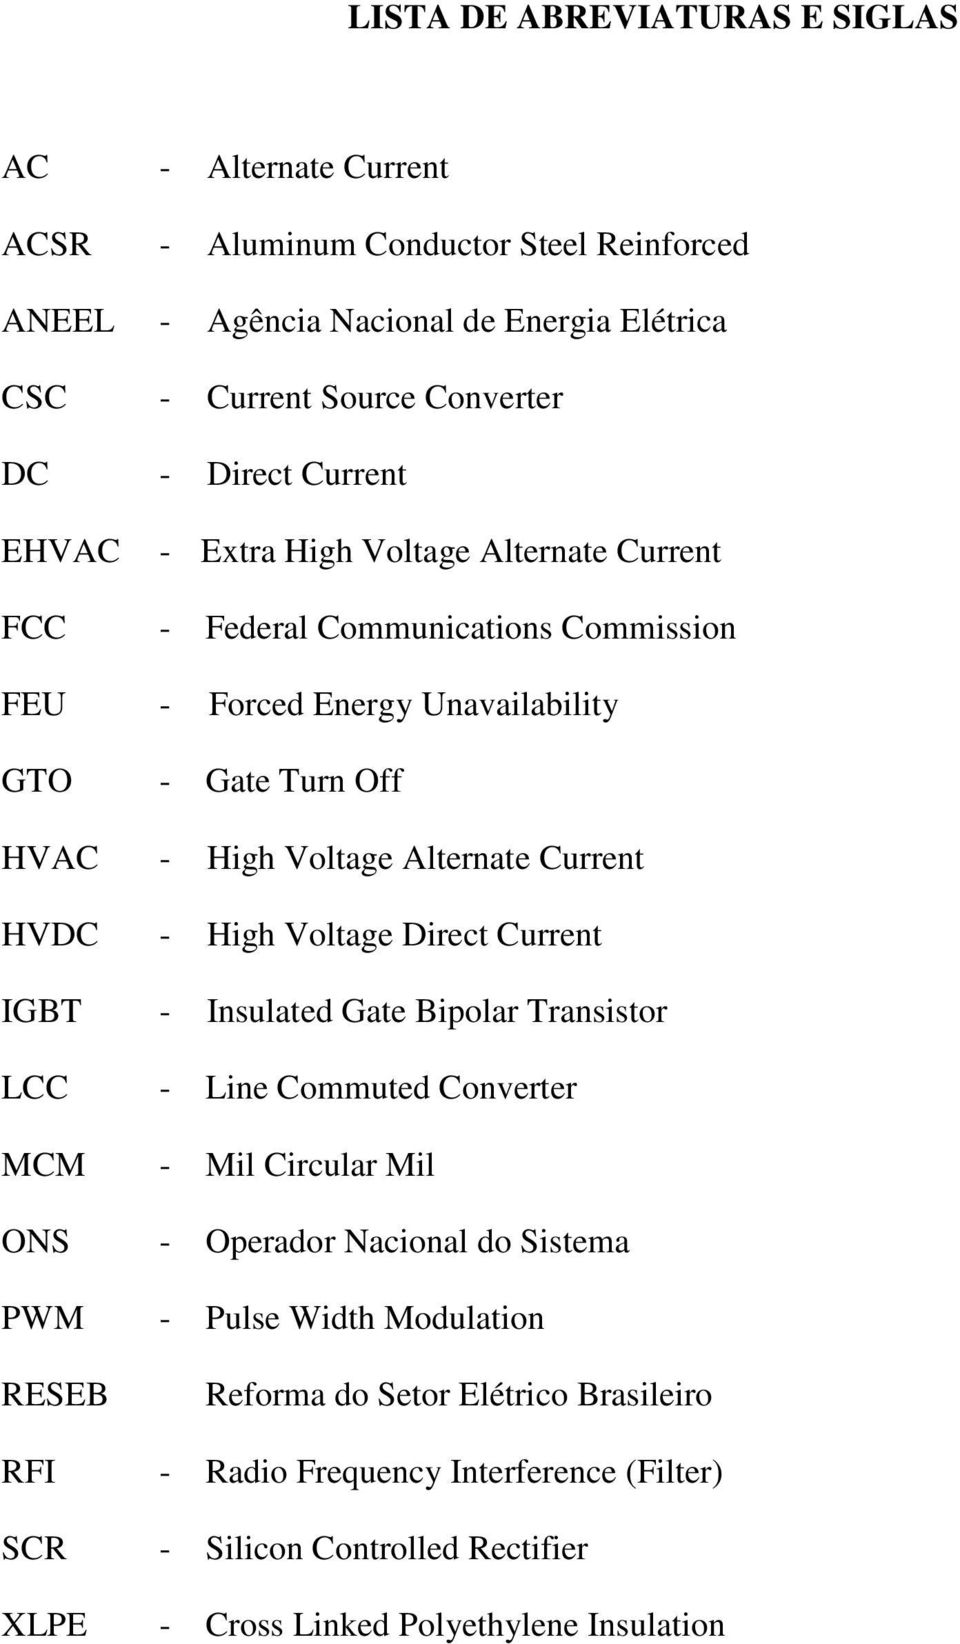 Alternate Current HVDC - High Voltage Direct Current IGBT - Insulated Gate Bipolar Transistor LCC - Line Commuted Converter MCM - Mil Circular Mil ONS - Operador Nacional do Sistema